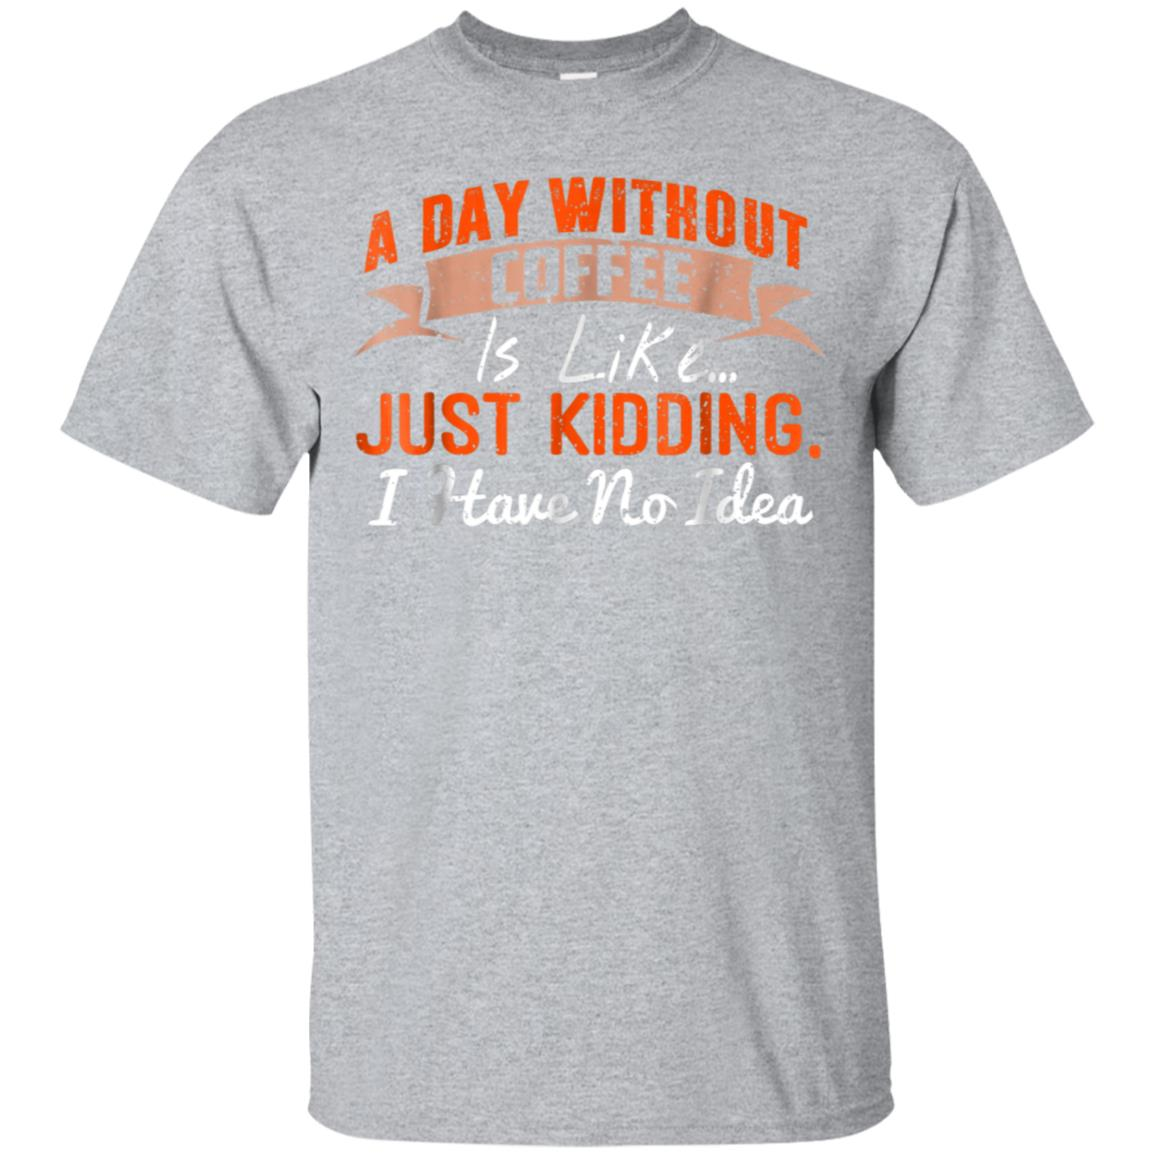 A Day Without Coffee is Like - Funny Coffee T-Shirt 99promocode